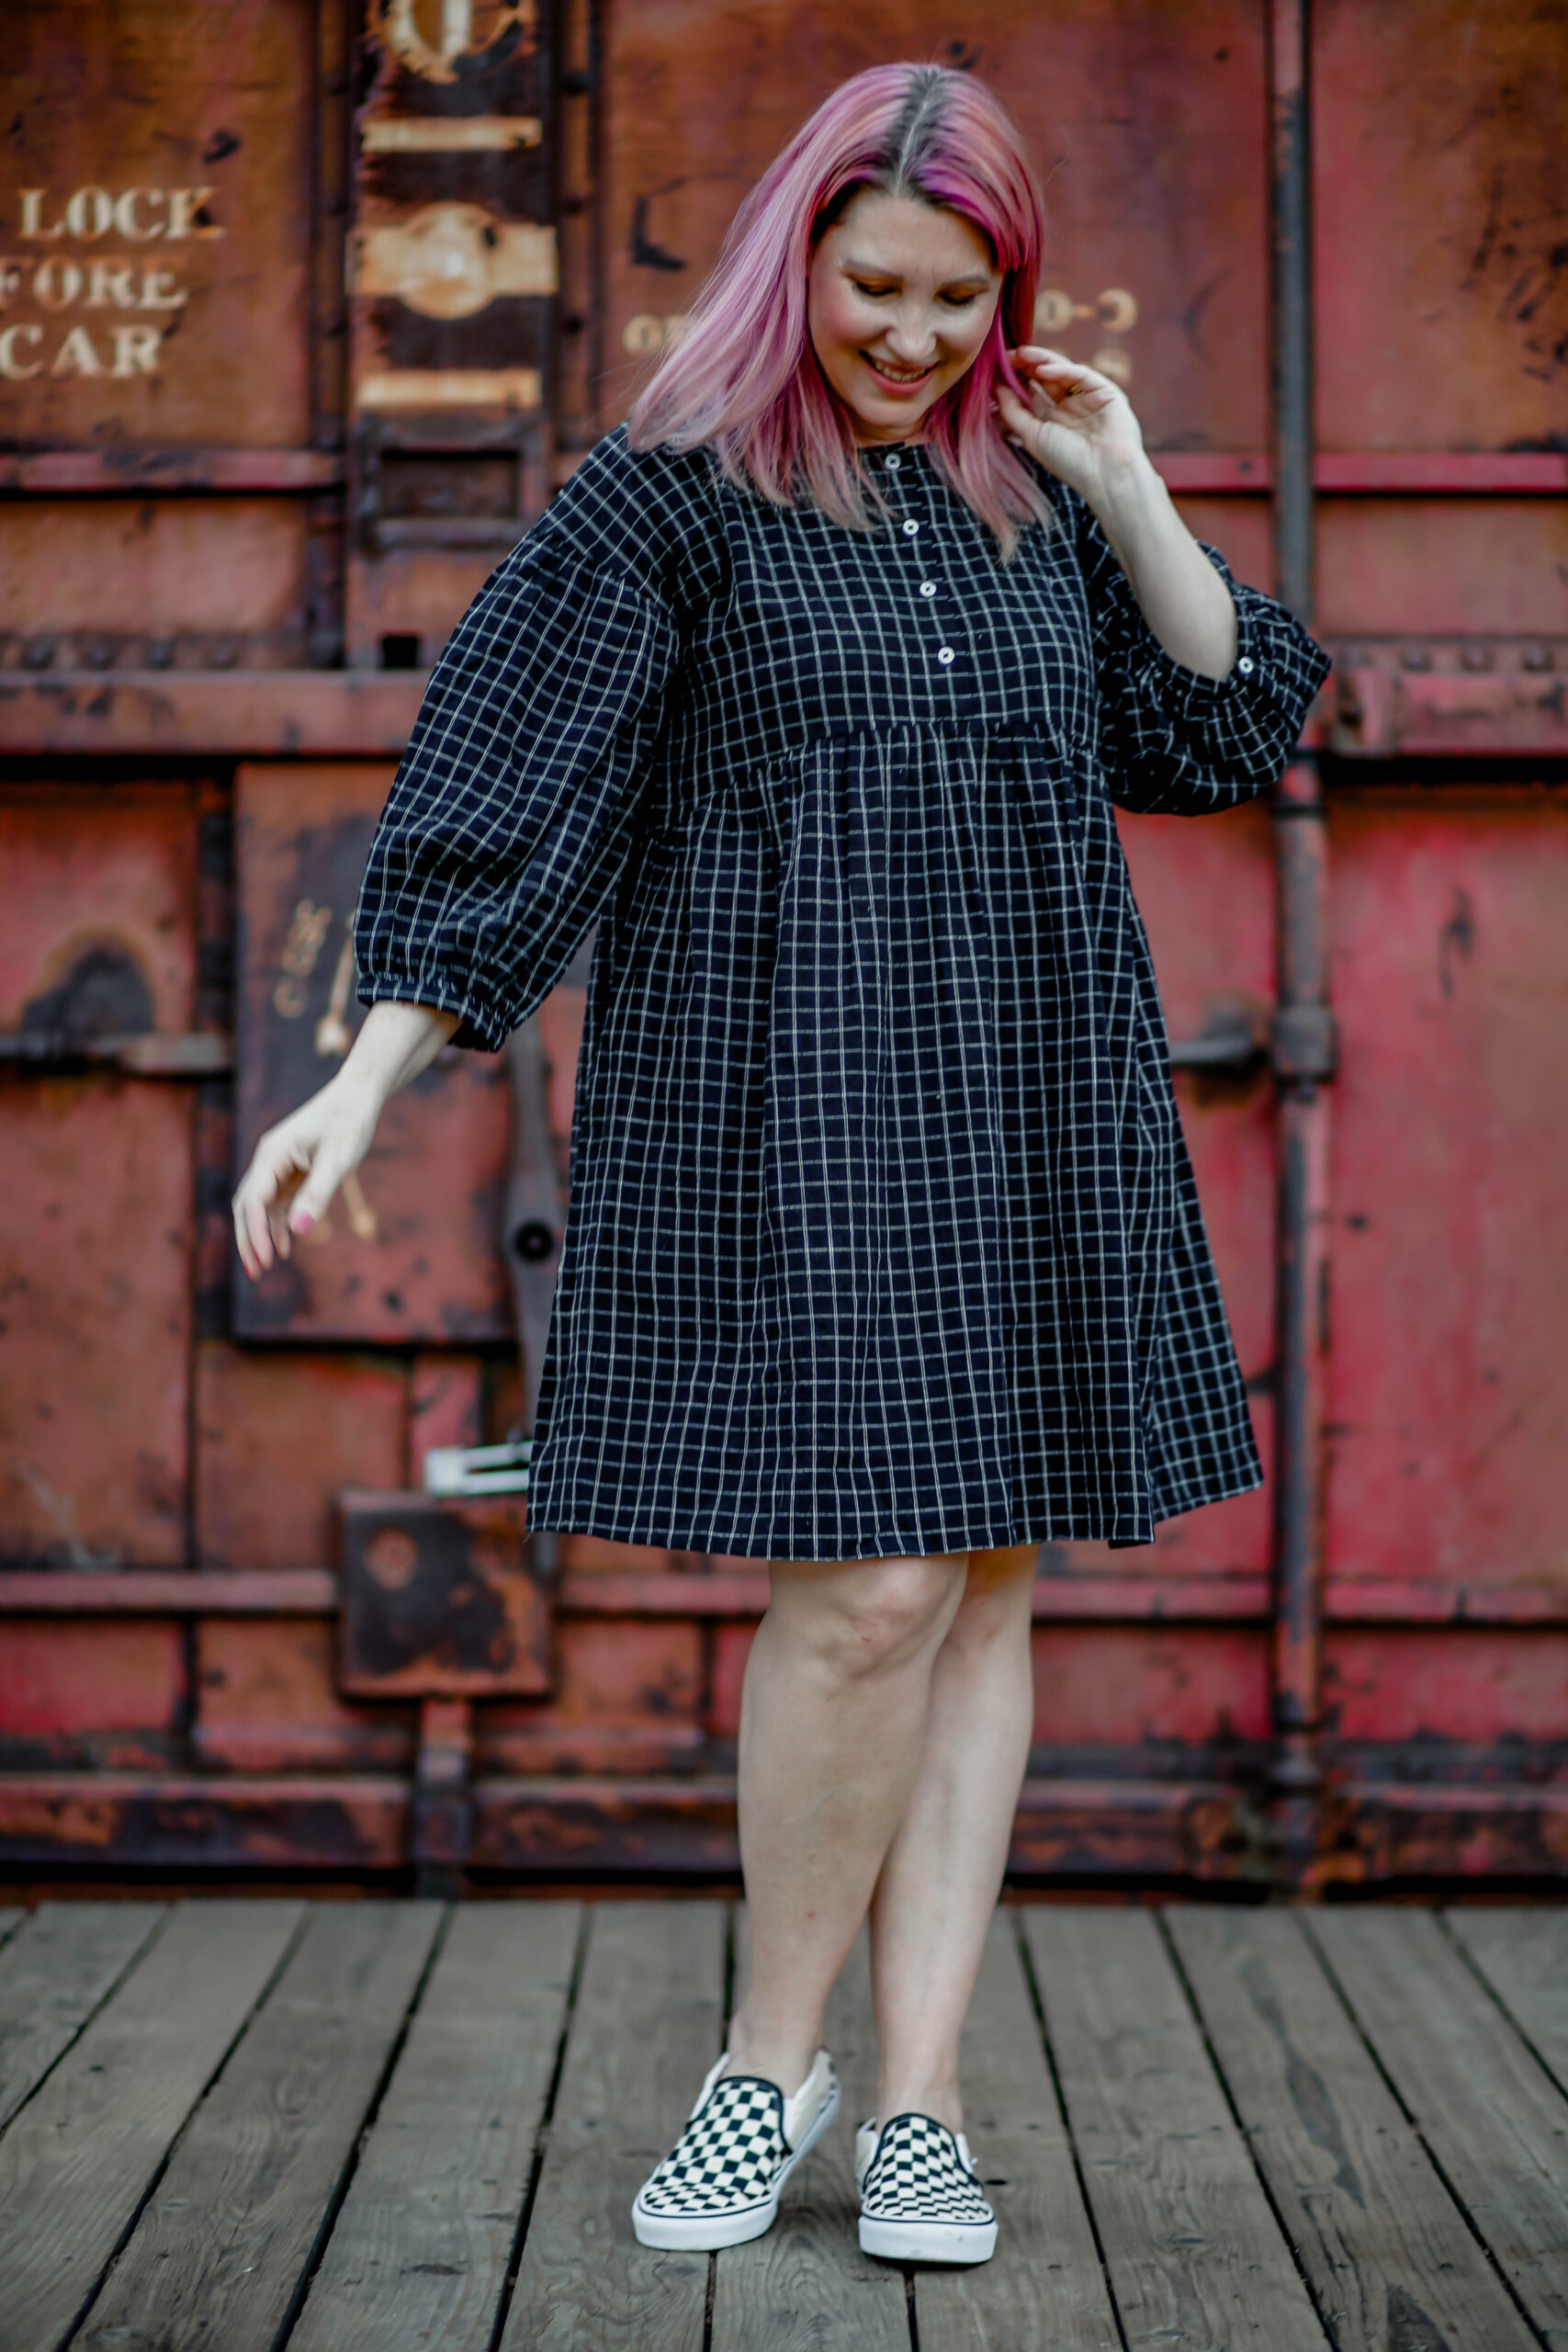 Looking for the best spring dresses for women with curves? These are my top picks (at a variety of price points)!